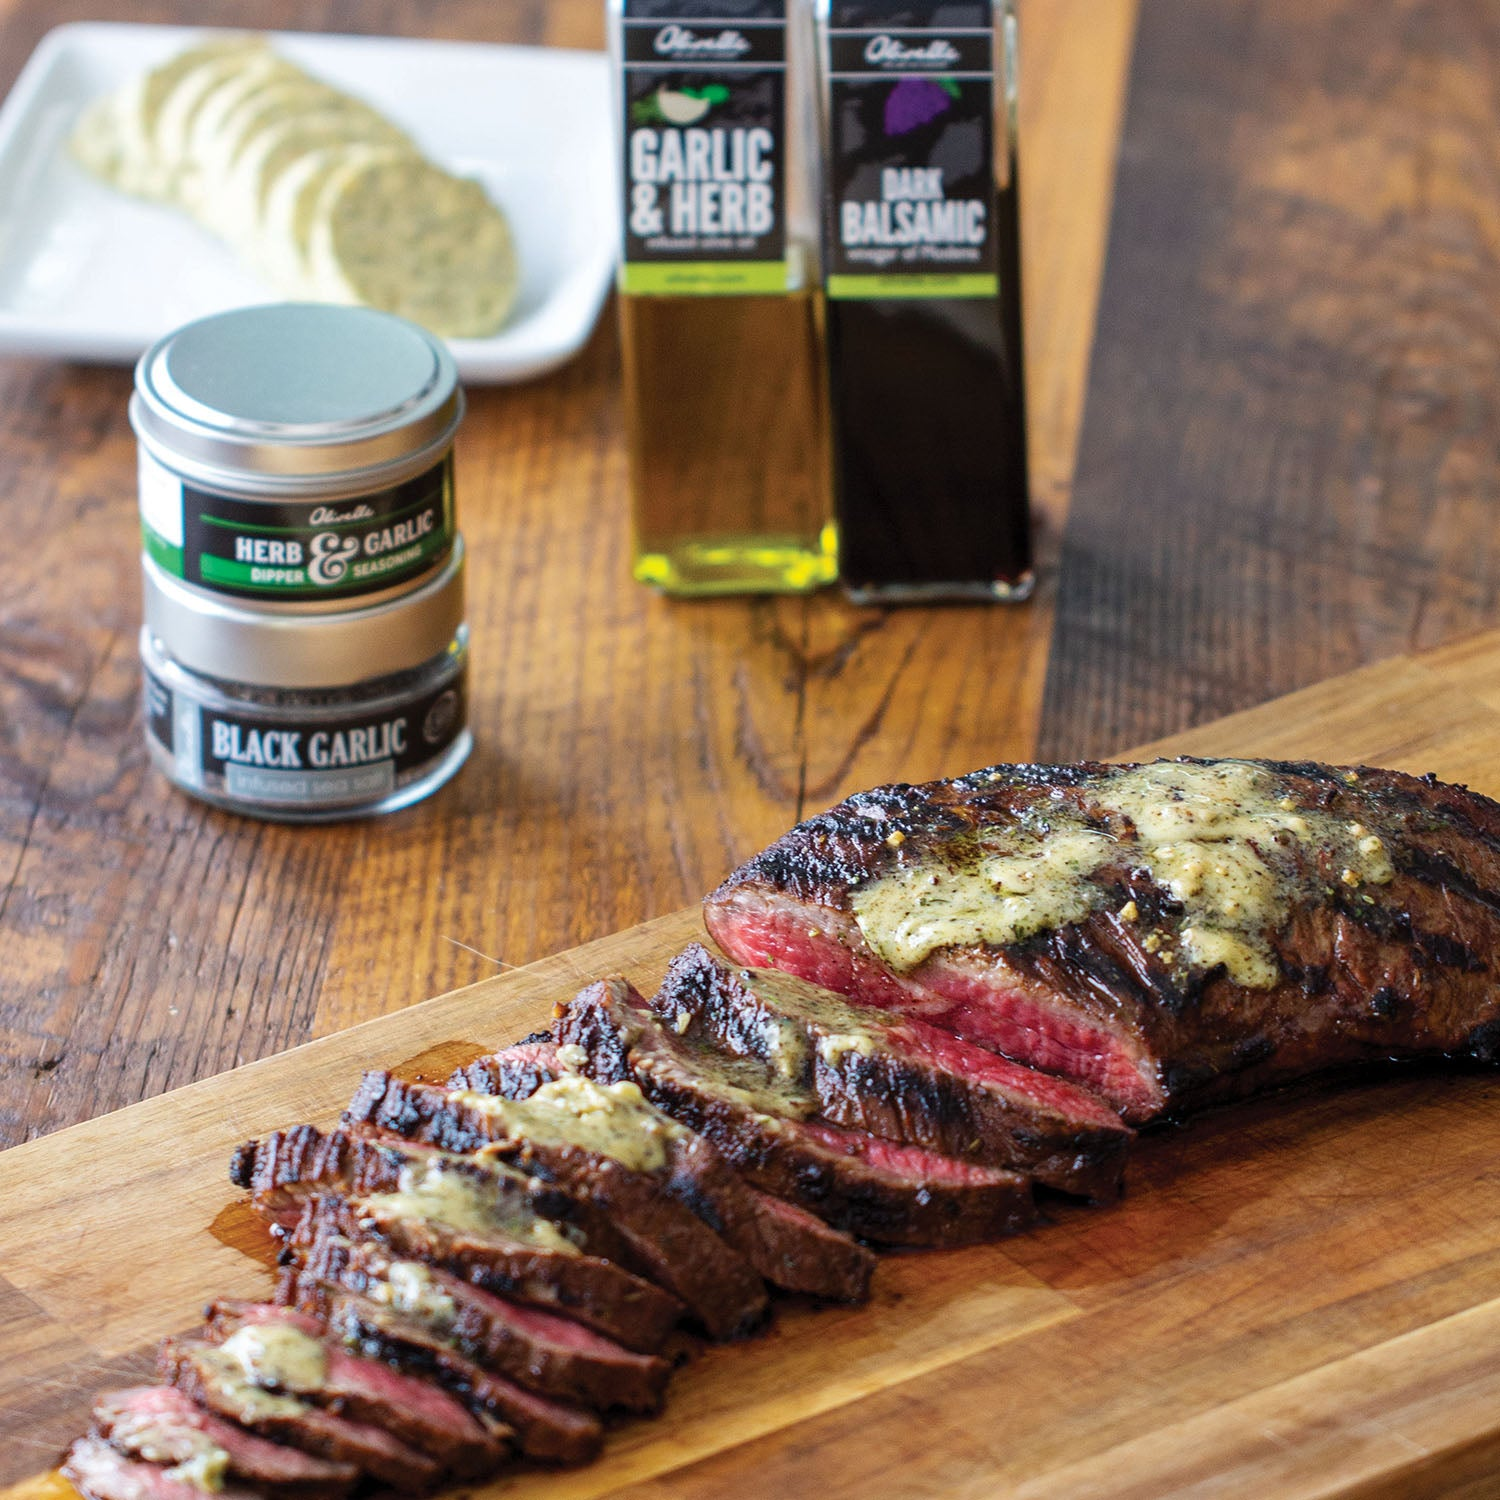 Herb & Garlic Tri-Tip with Compound Butter